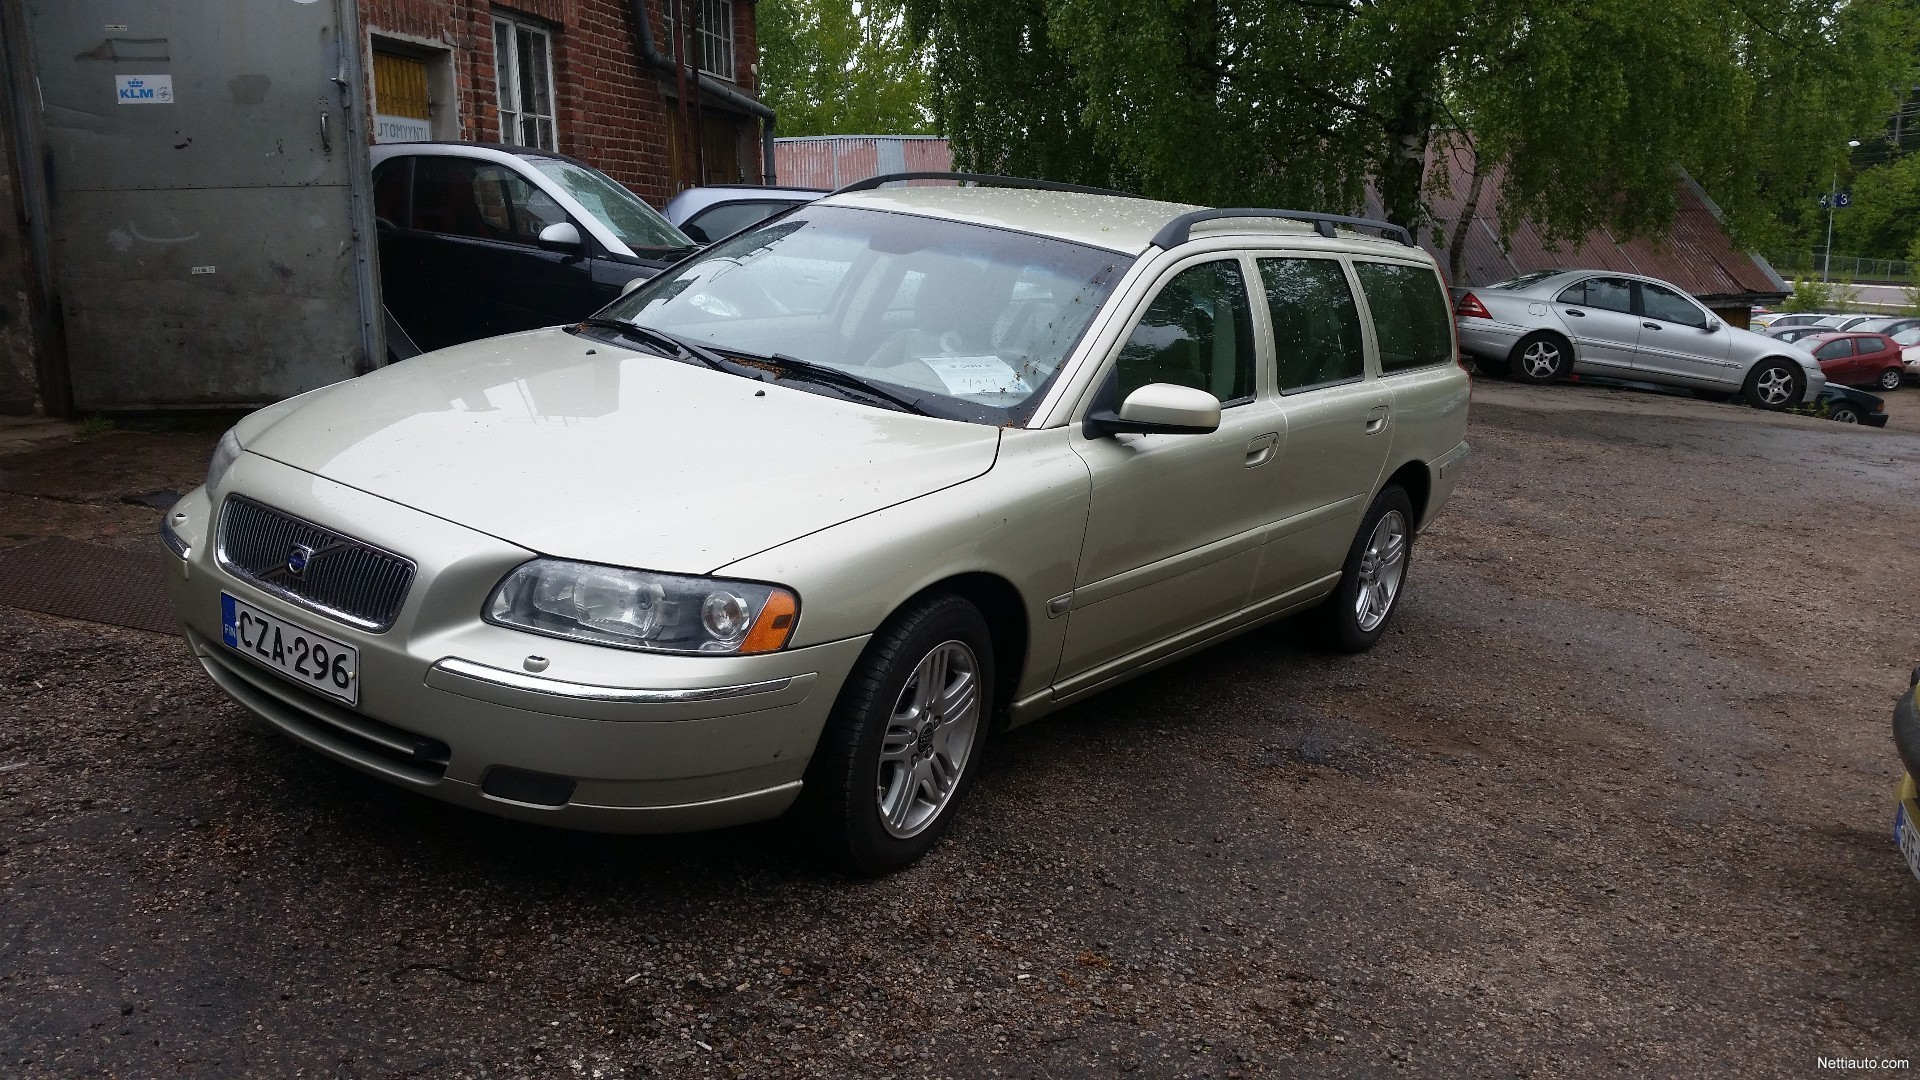 volvo v70 2 5 4wd automatic station wagon 2006 used vehicle nettiauto. Black Bedroom Furniture Sets. Home Design Ideas